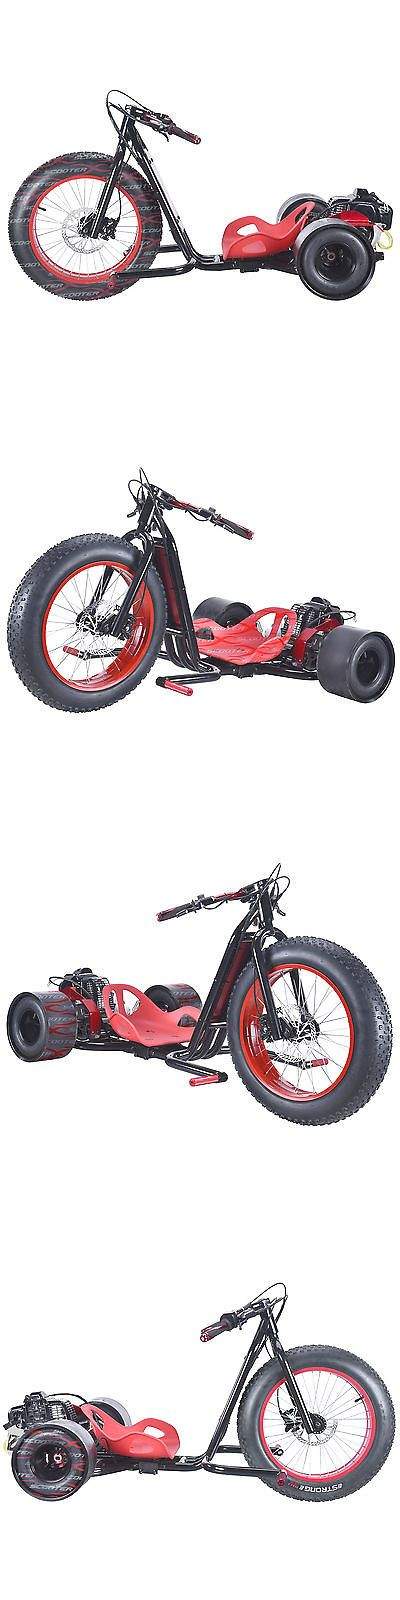 Other Scooters 11329: Red 3 Wheel Drifting Trike Gas Powered Outdoor Drift Sport 2 Stroke 49Cc 30Mph -> BUY IT NOW ONLY: $830.99 on eBay!